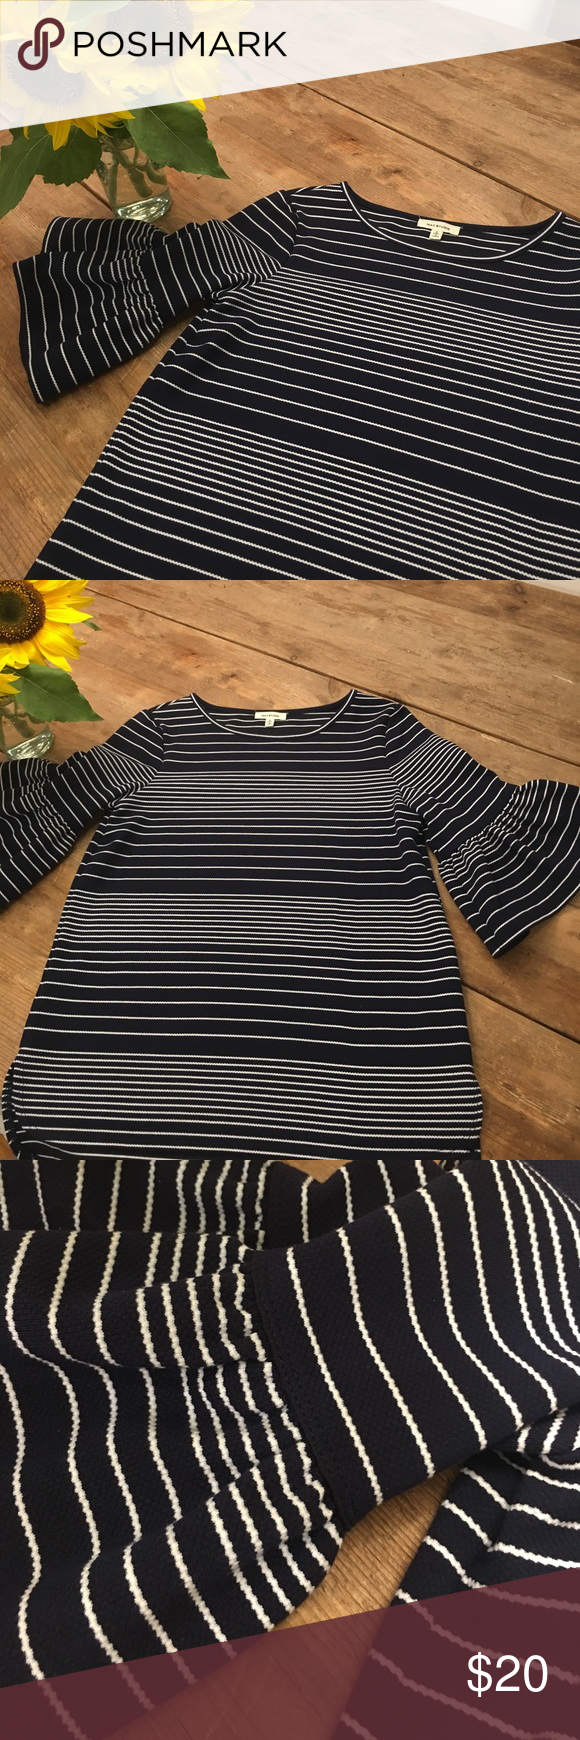 Woman's navy blue/white stripe top Navy and white stripe crew neck too!  Poly/spandex and rayon.  Super comfy and falls below hips. Cute sleeve details. Great with white jeans! Max Studio Tops Tees - Short Sleeve